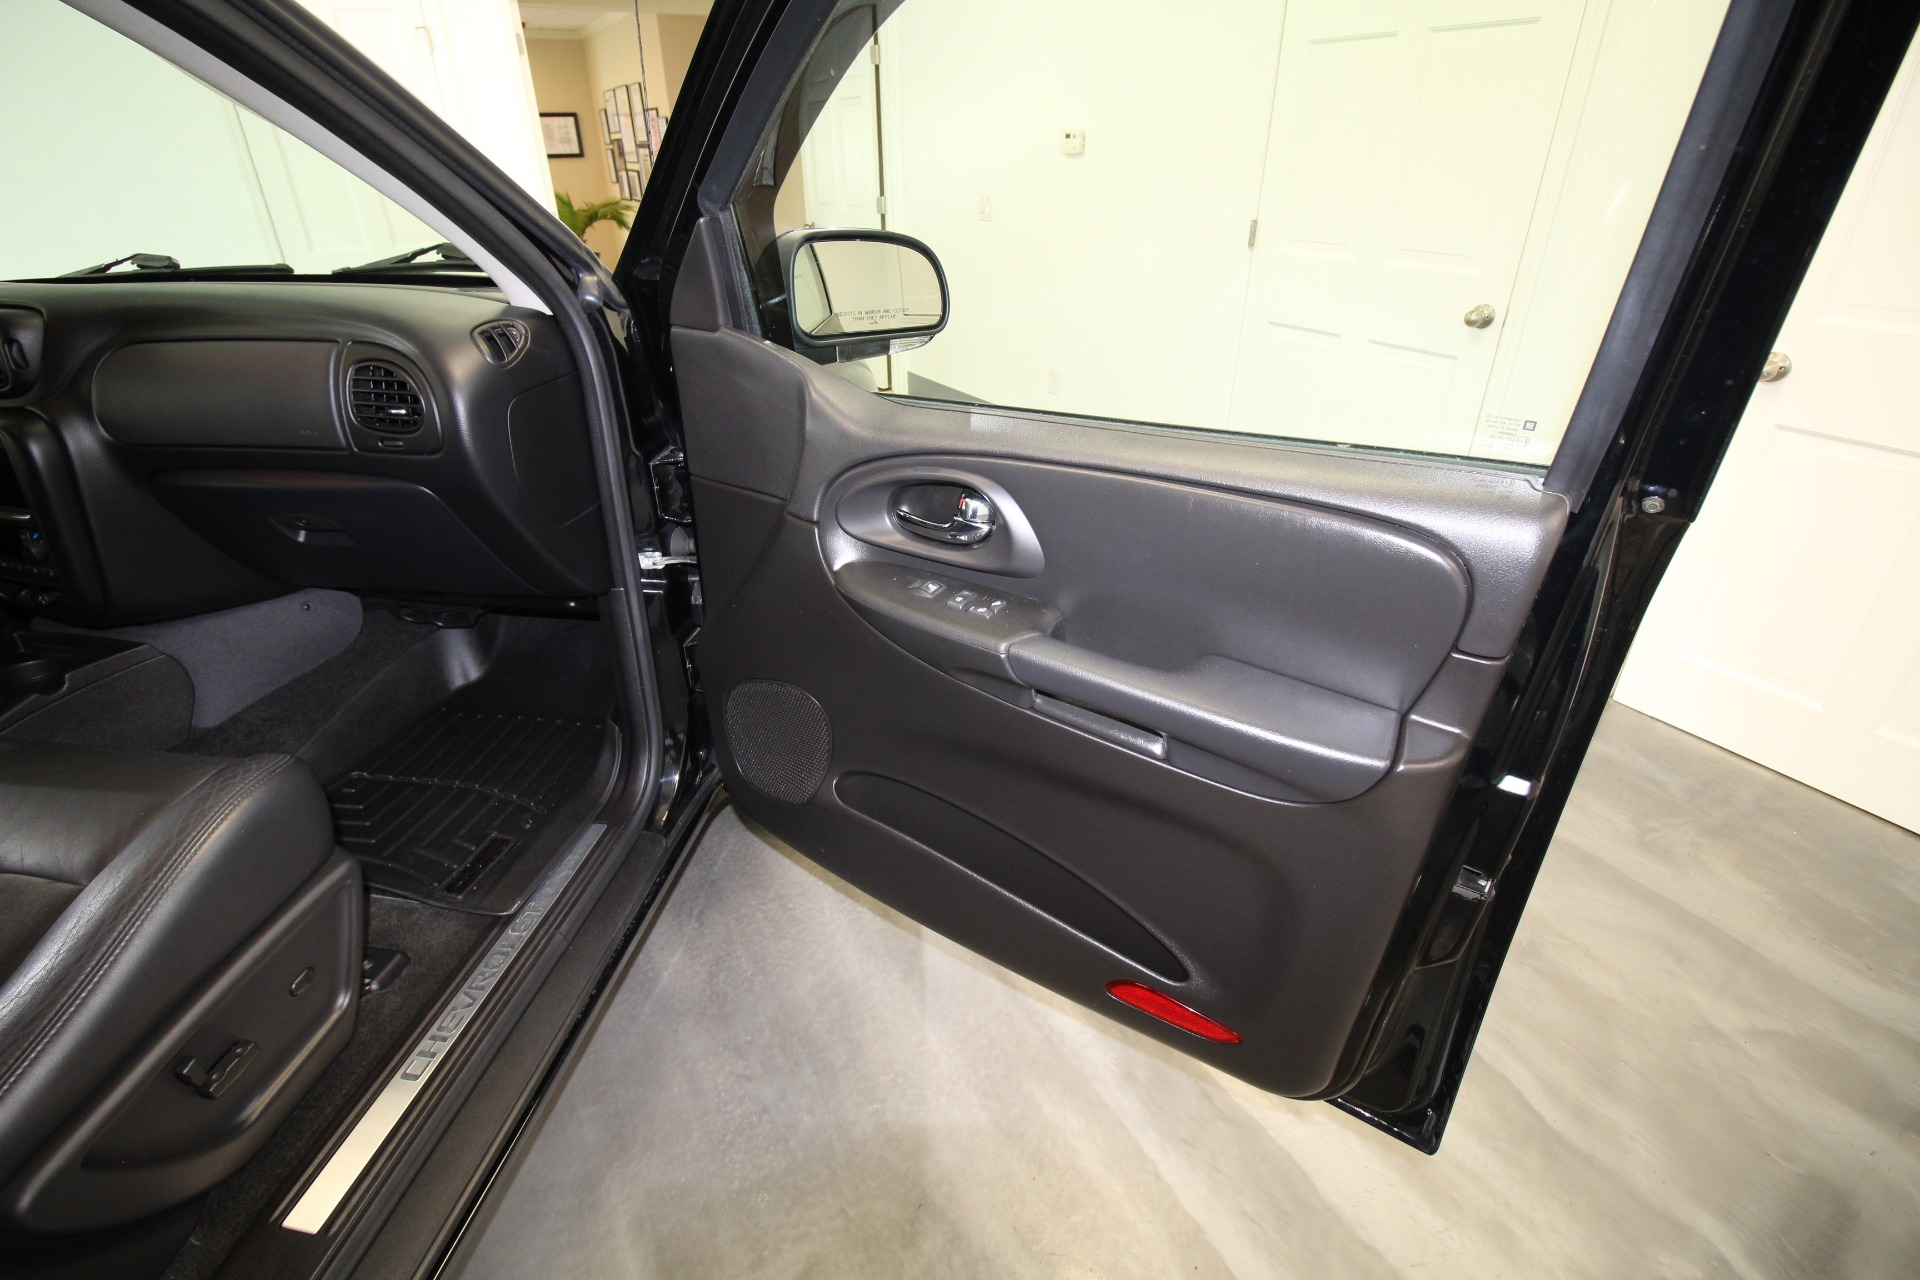 Used 2006 Chevrolet TrailBlazer SS LT COLLECTOR''''S QUALITY SUPERB INSIDE AND OUT LOW MILES 56K   Albany, NY